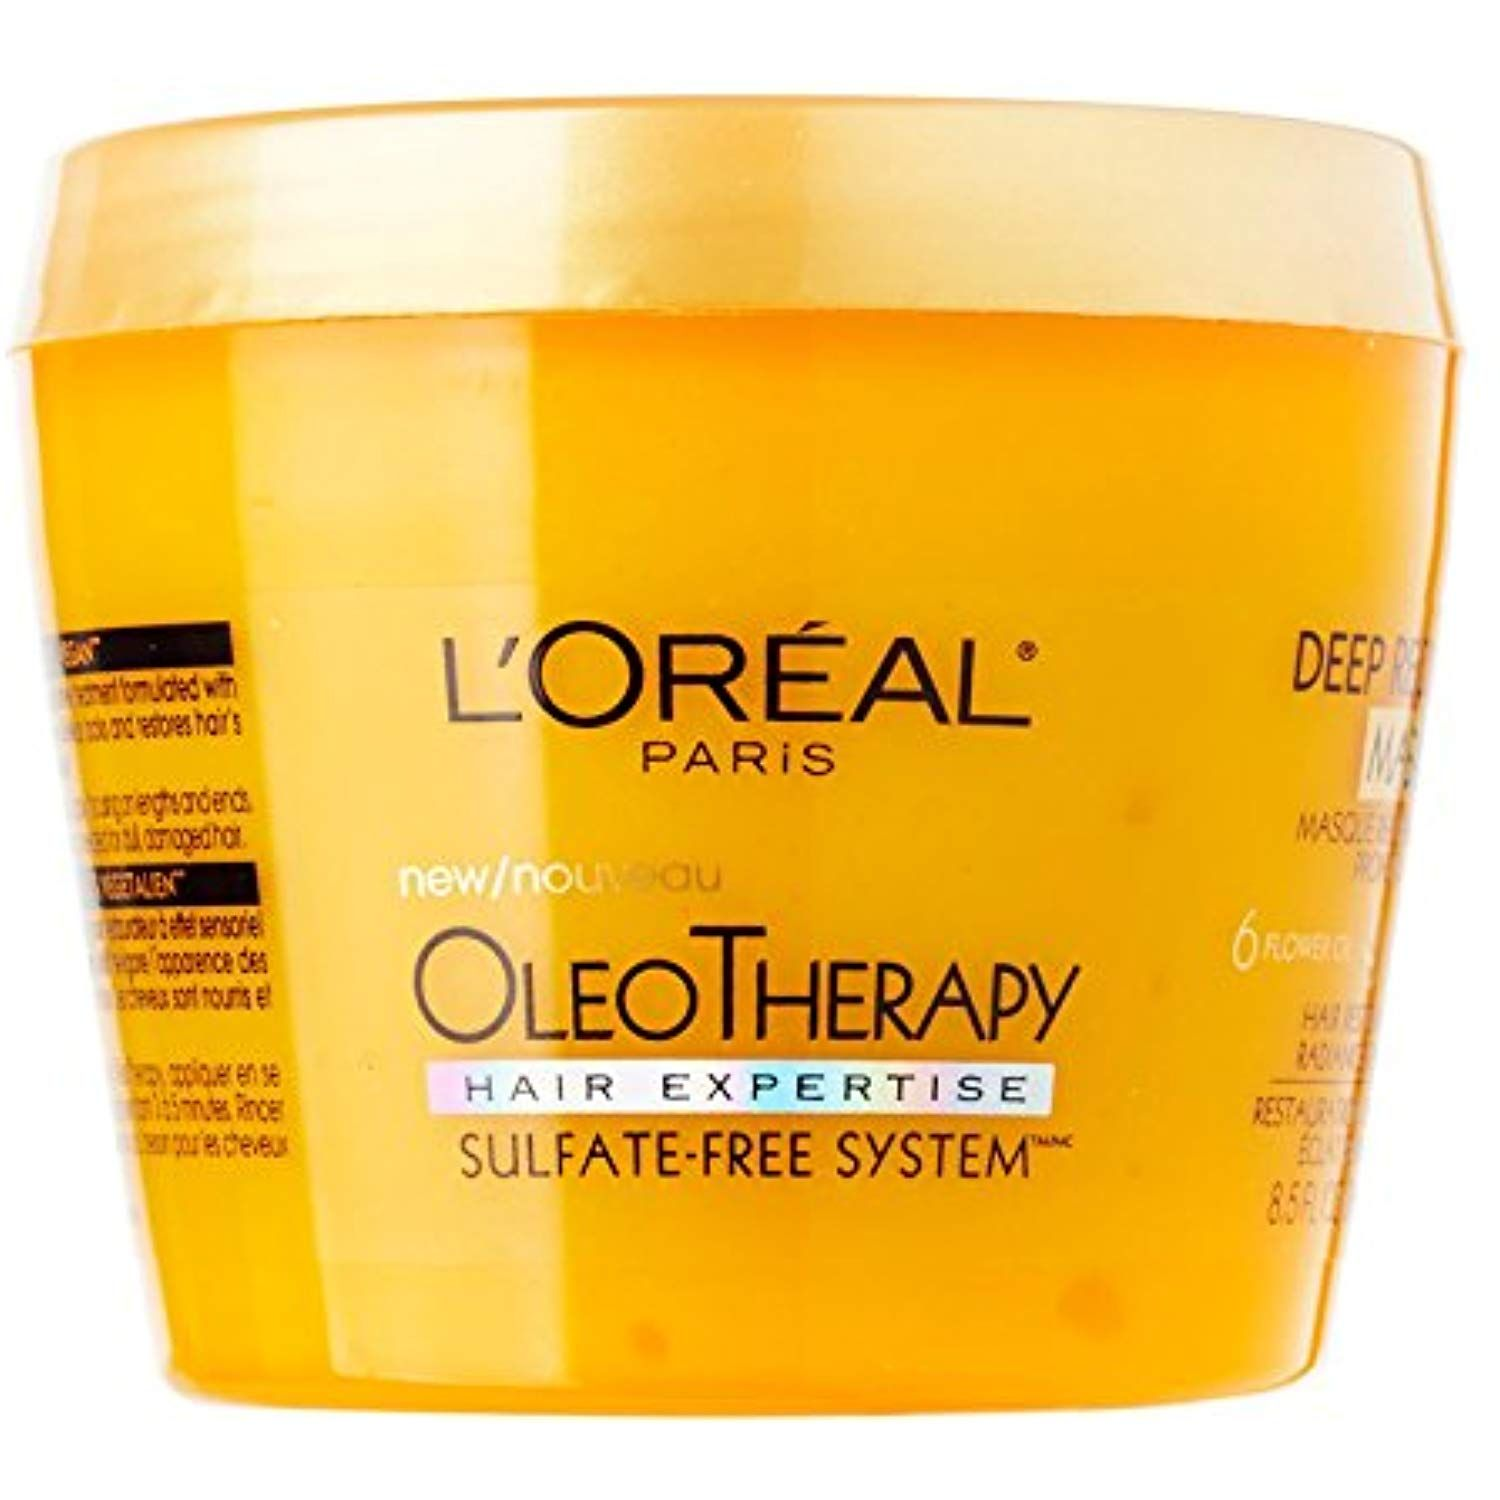 L'Oreal Paris Hair Expertise OleoTherapy Deep Rescue Oil